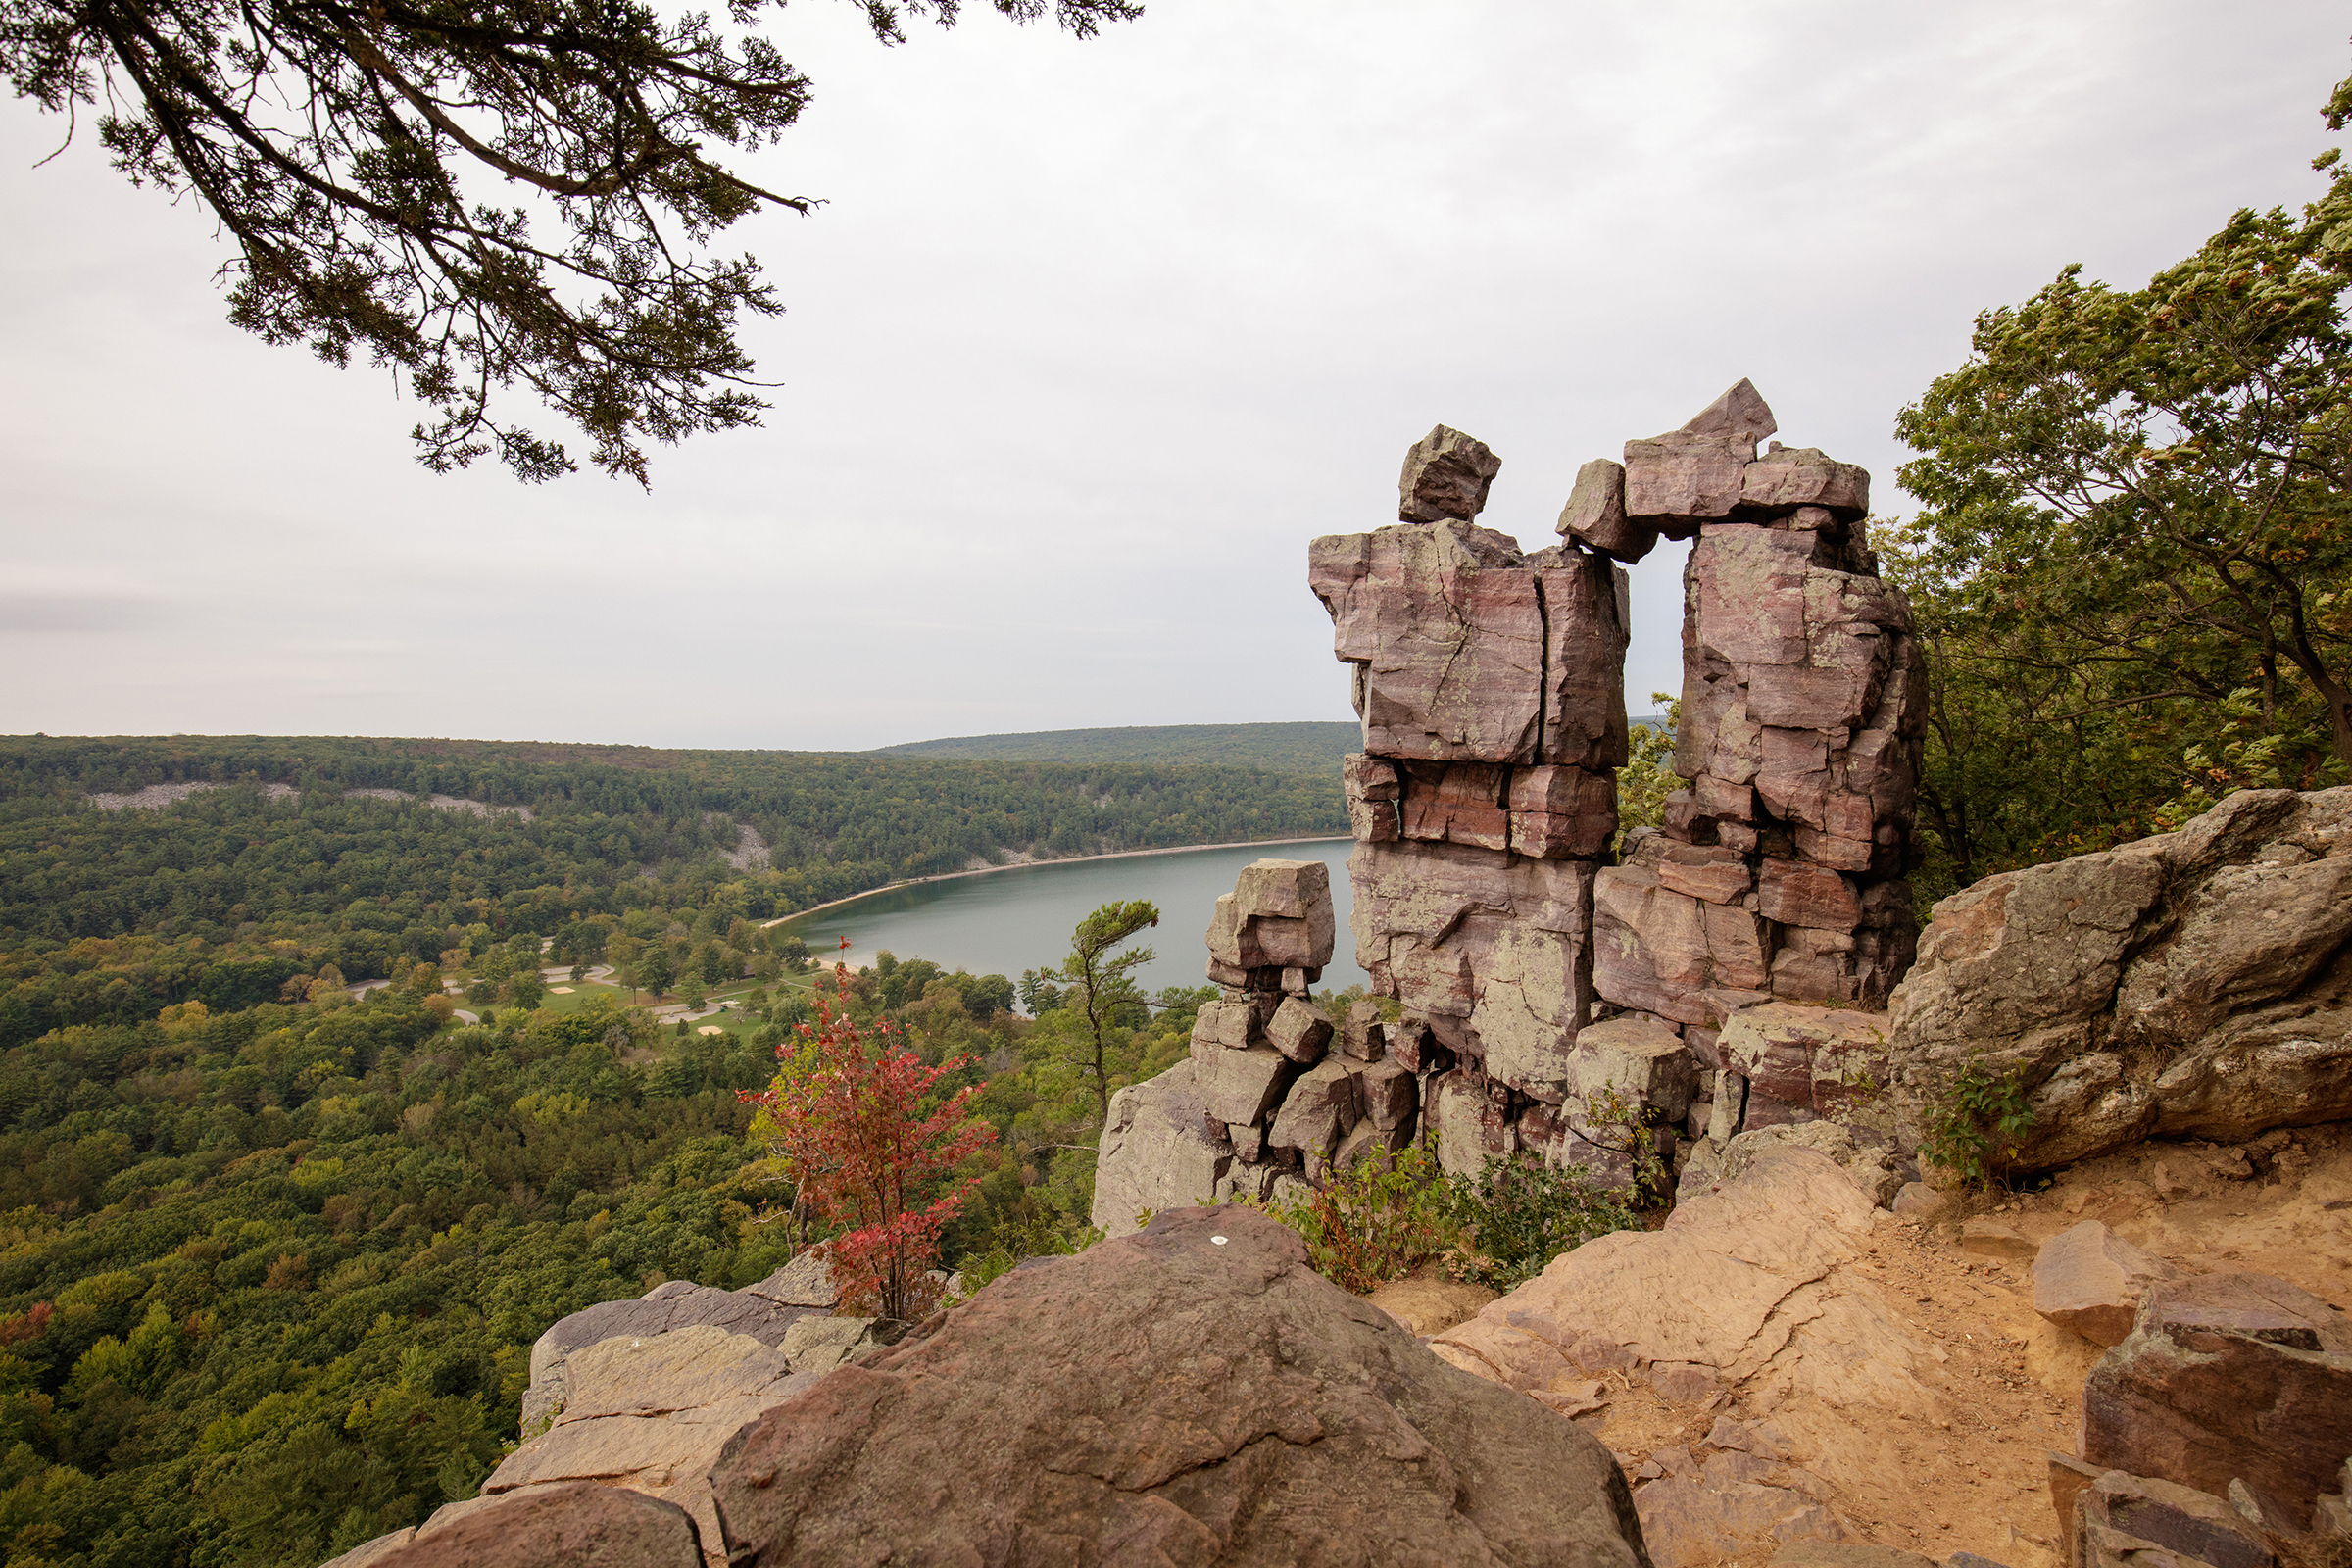 BARBAROO-WISCONSIN-Devils-Doorway-East-Bluff-Trail-at-Devils-Lake-State-Park.jpg?mtime=20181226231707#asset:104180